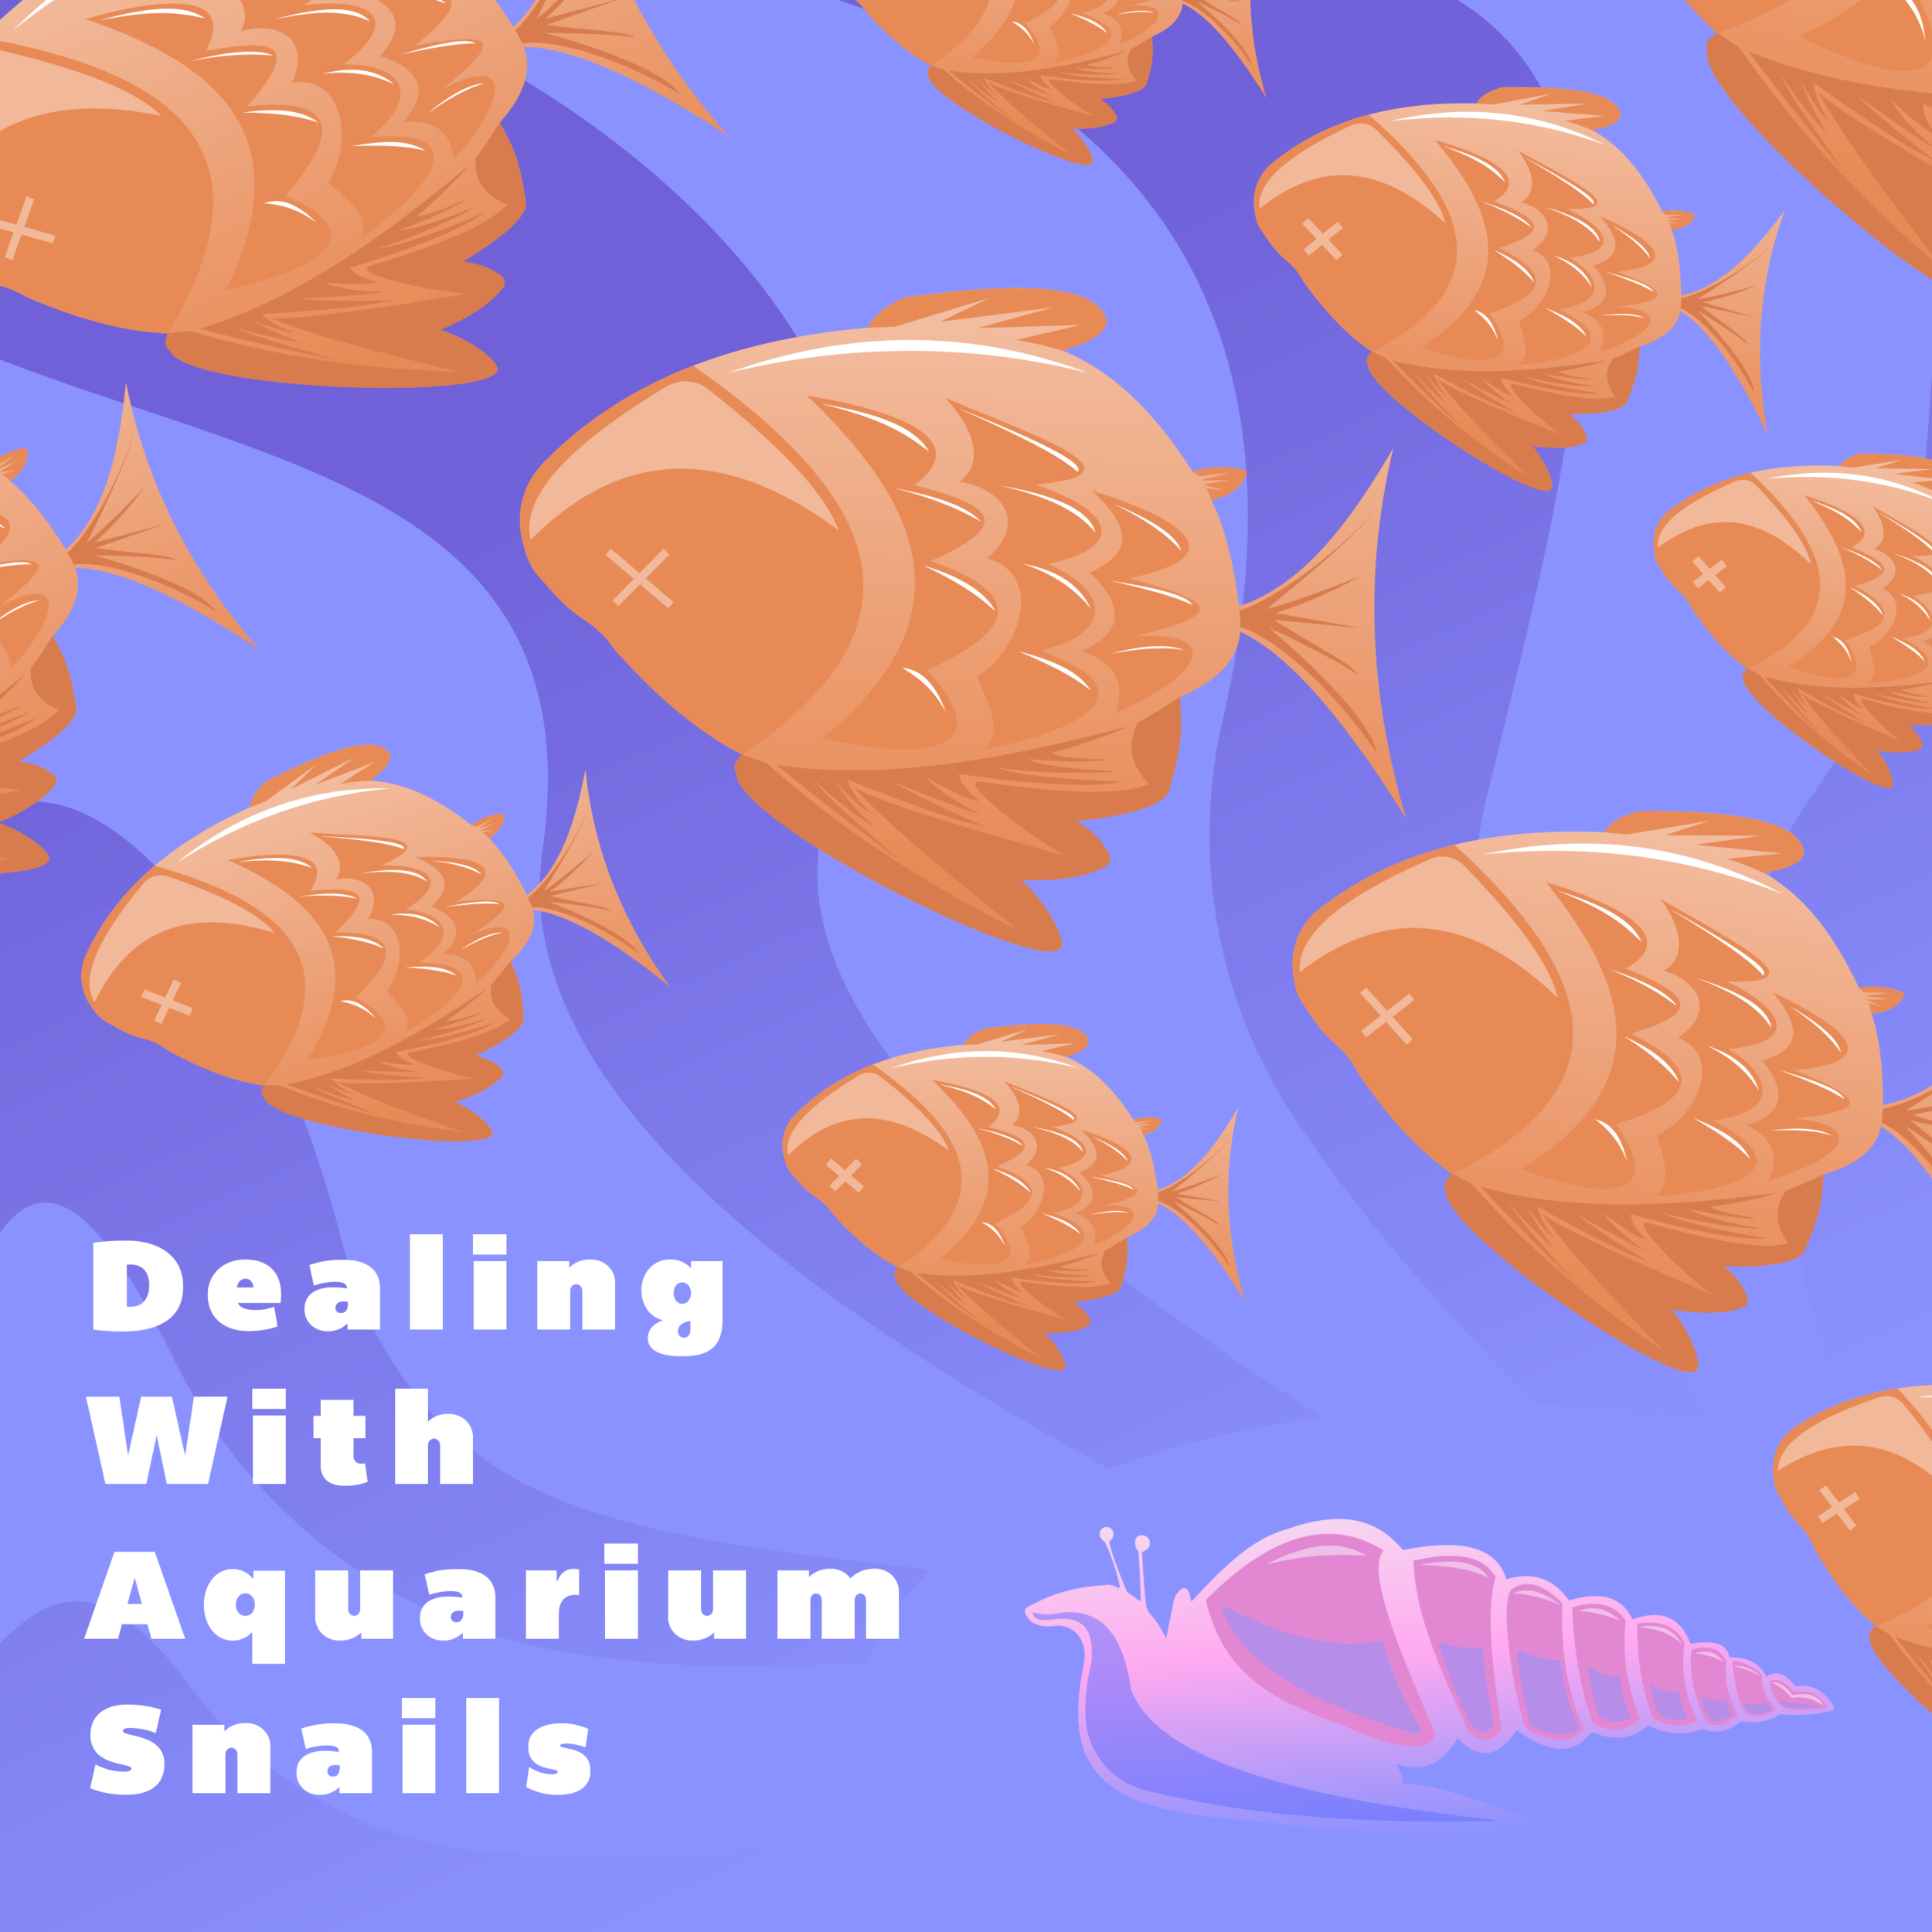 Dealing With Aquarium Snails - 2019   Adobe Illustrator